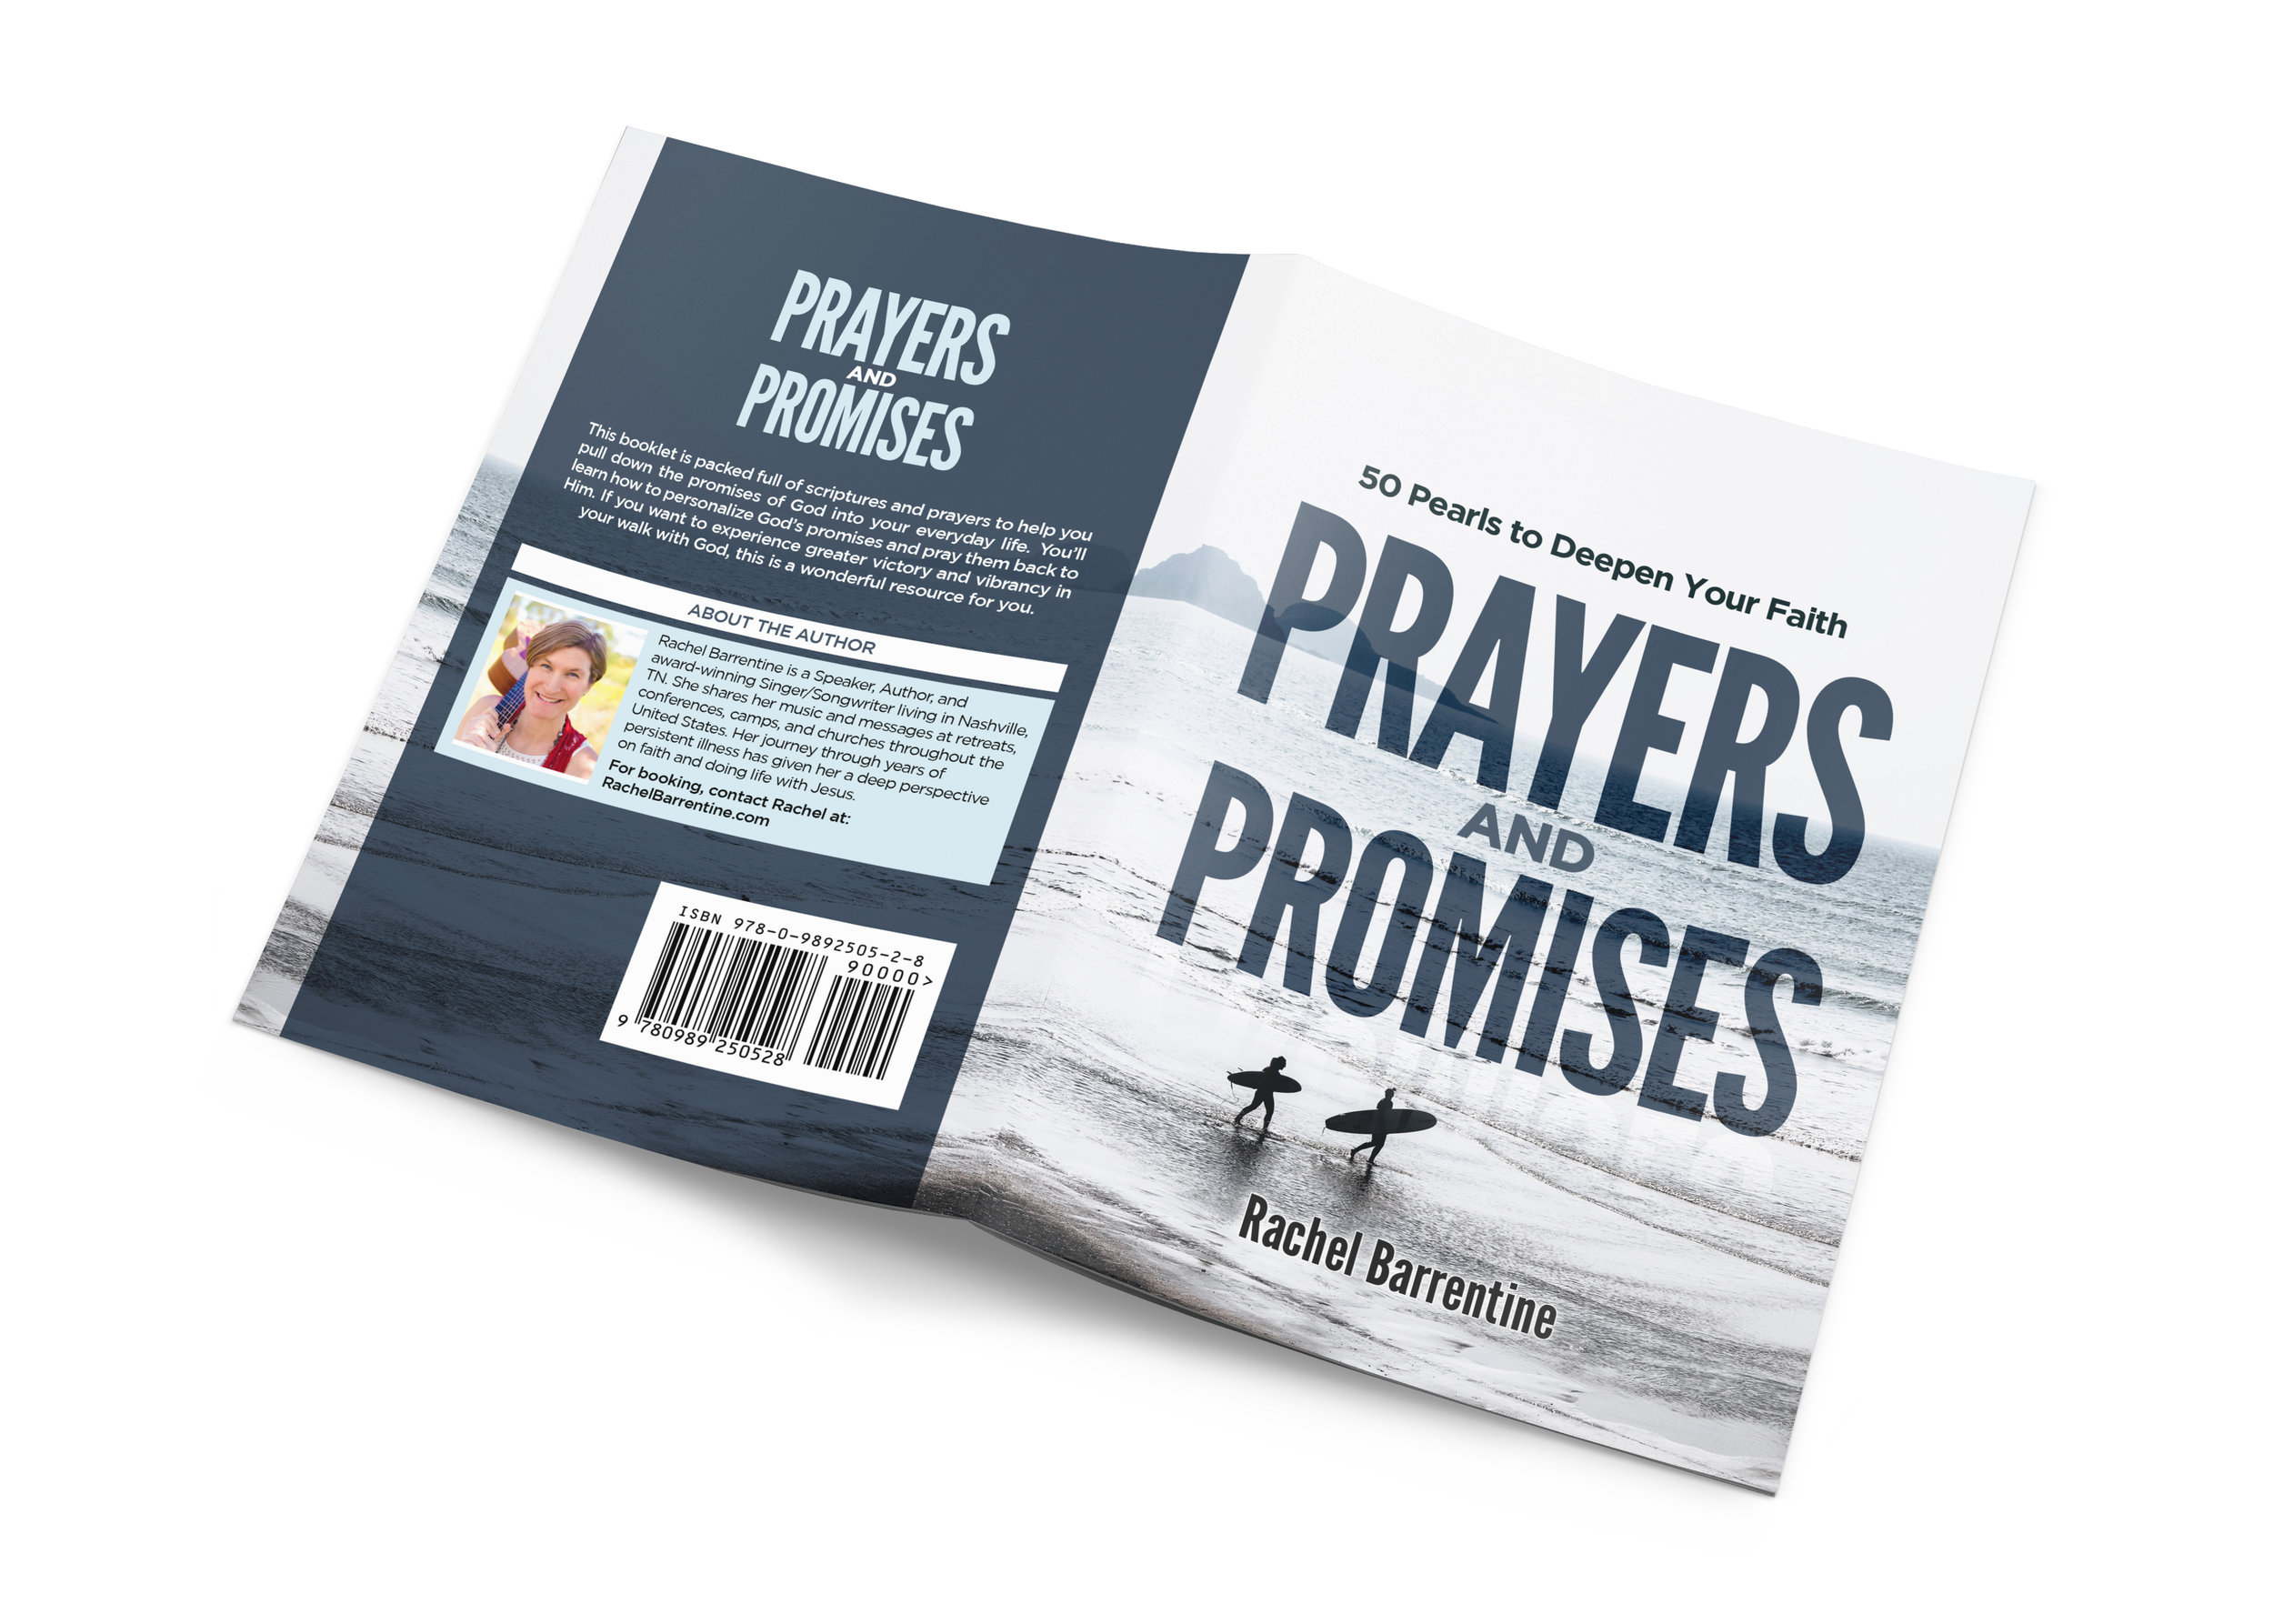 Rachel's  NEW  booklet - Prayers and Promises: 50 Pearls to Deepen Your Faith